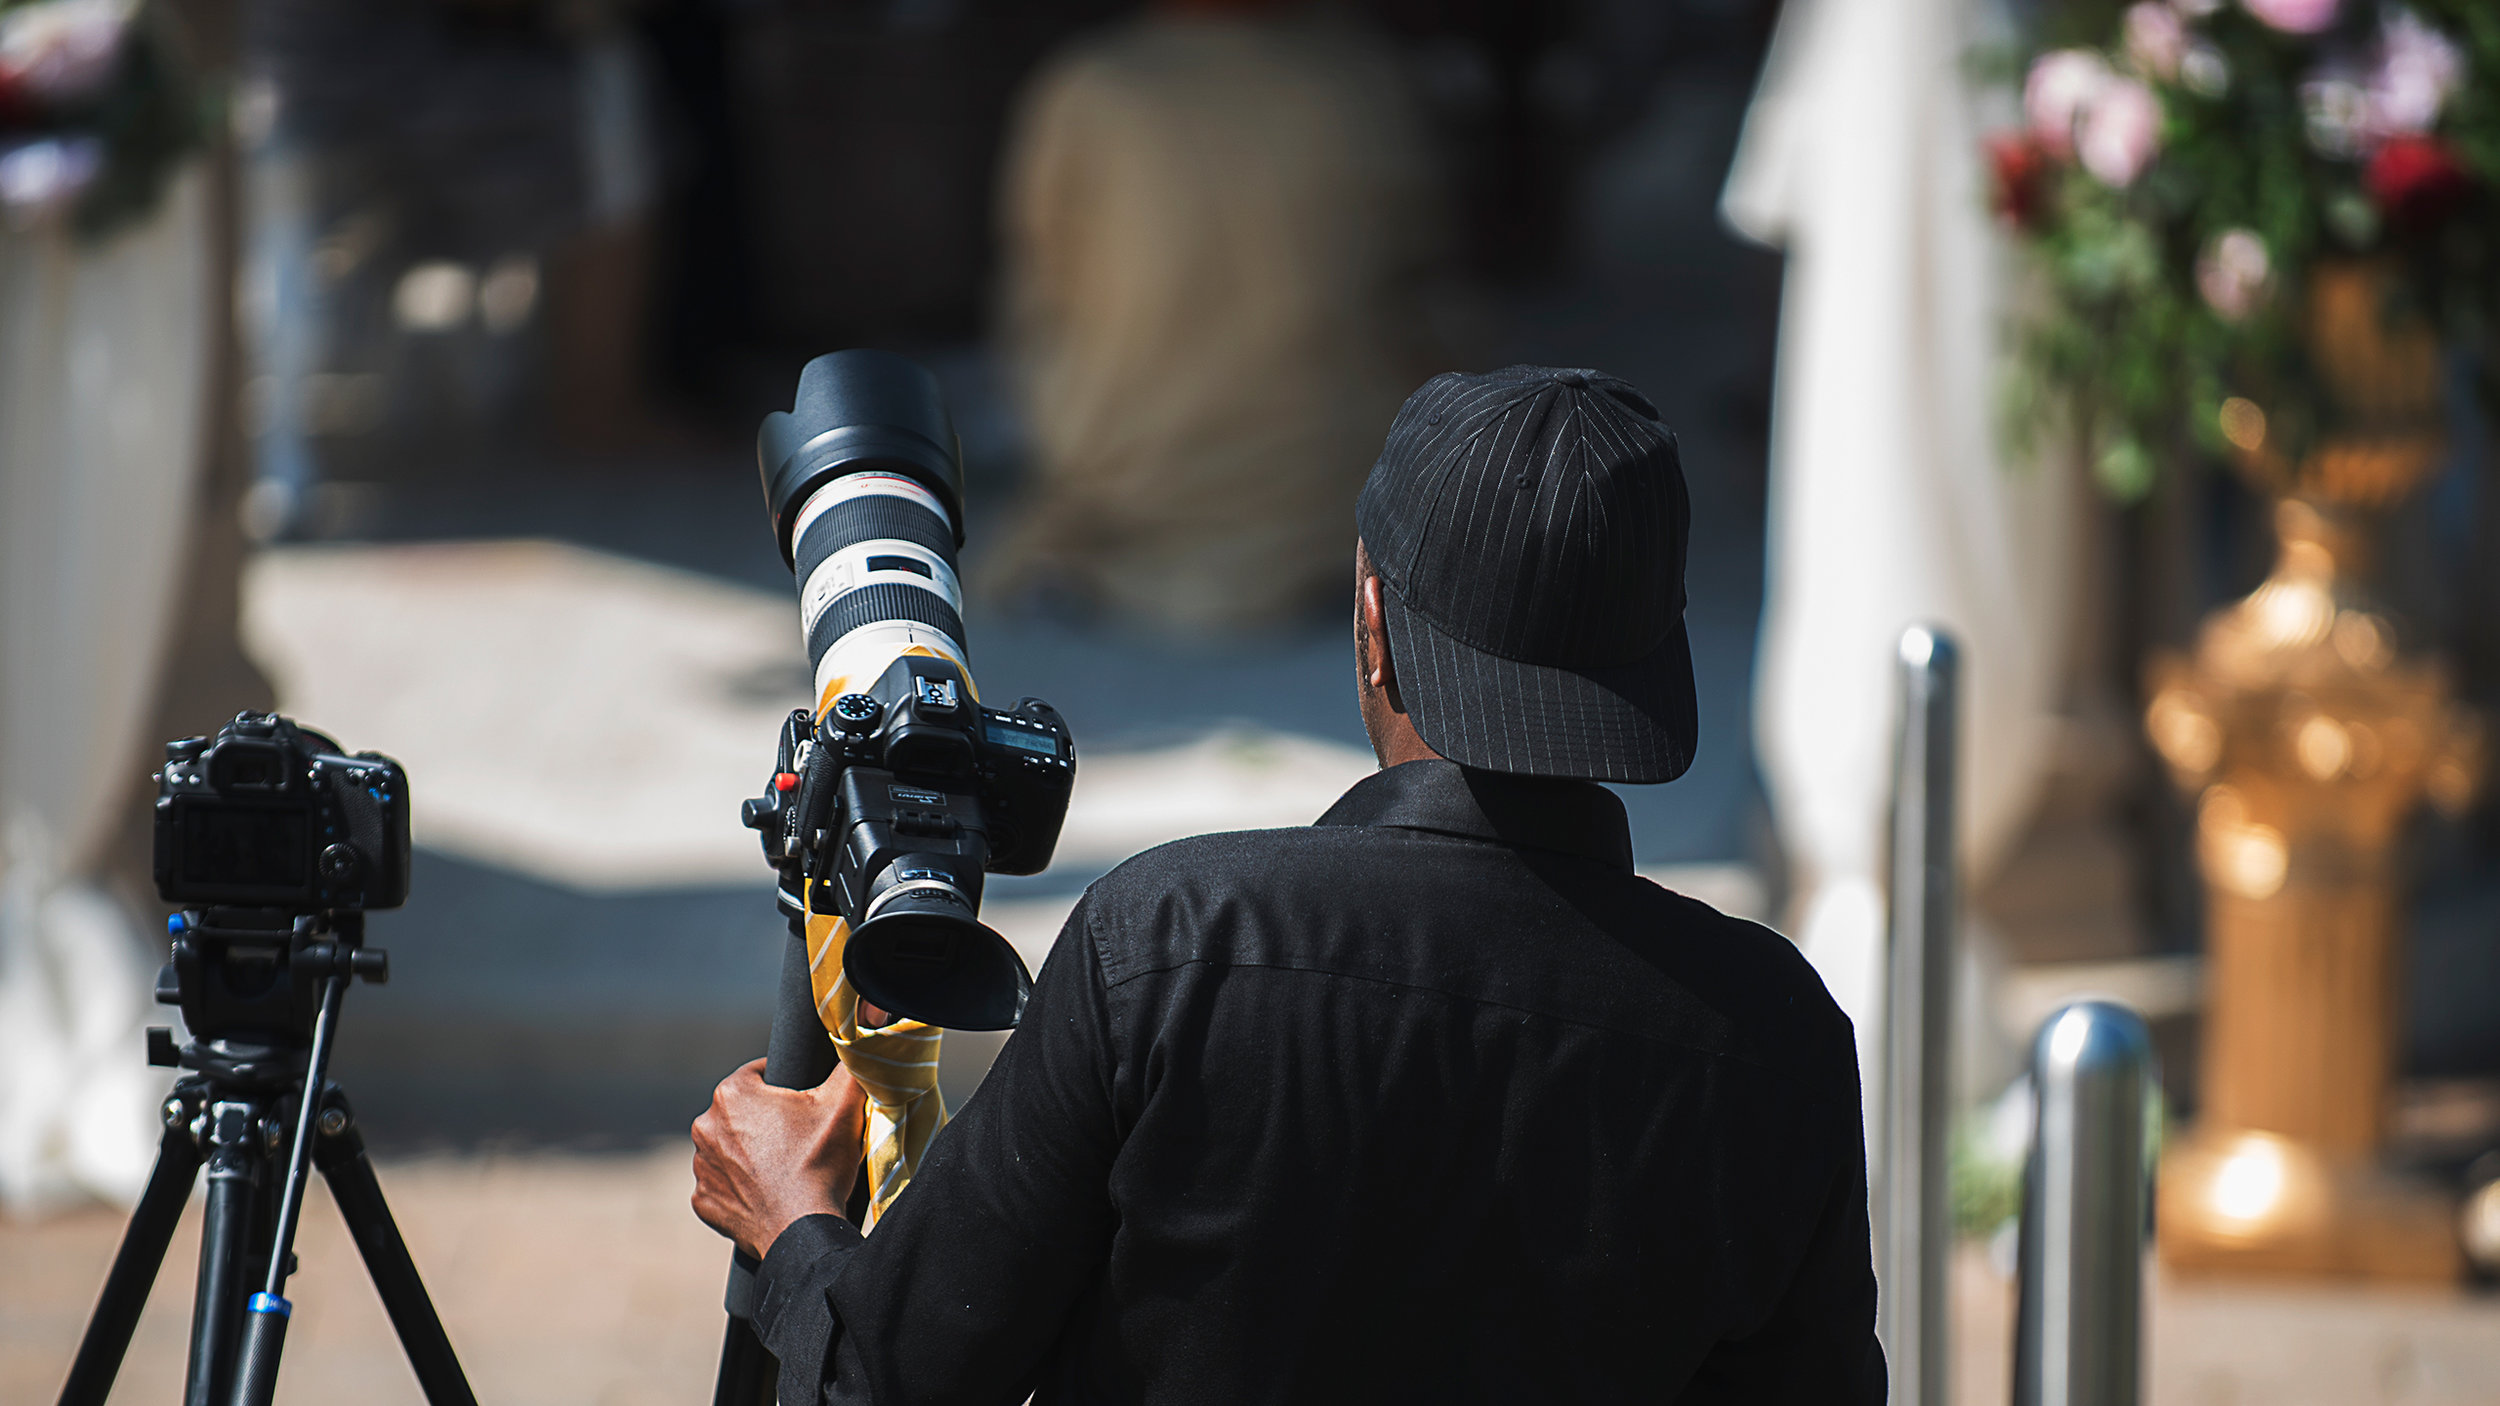 It's time to tell your story - As a professional event videographer, most of my videography is produced in my work with my brand, Aperture Lane. Though my team and I help organisations and businesses tell their story, the bulk of our commercial work is currently with couples, producing story-driven wedding films.